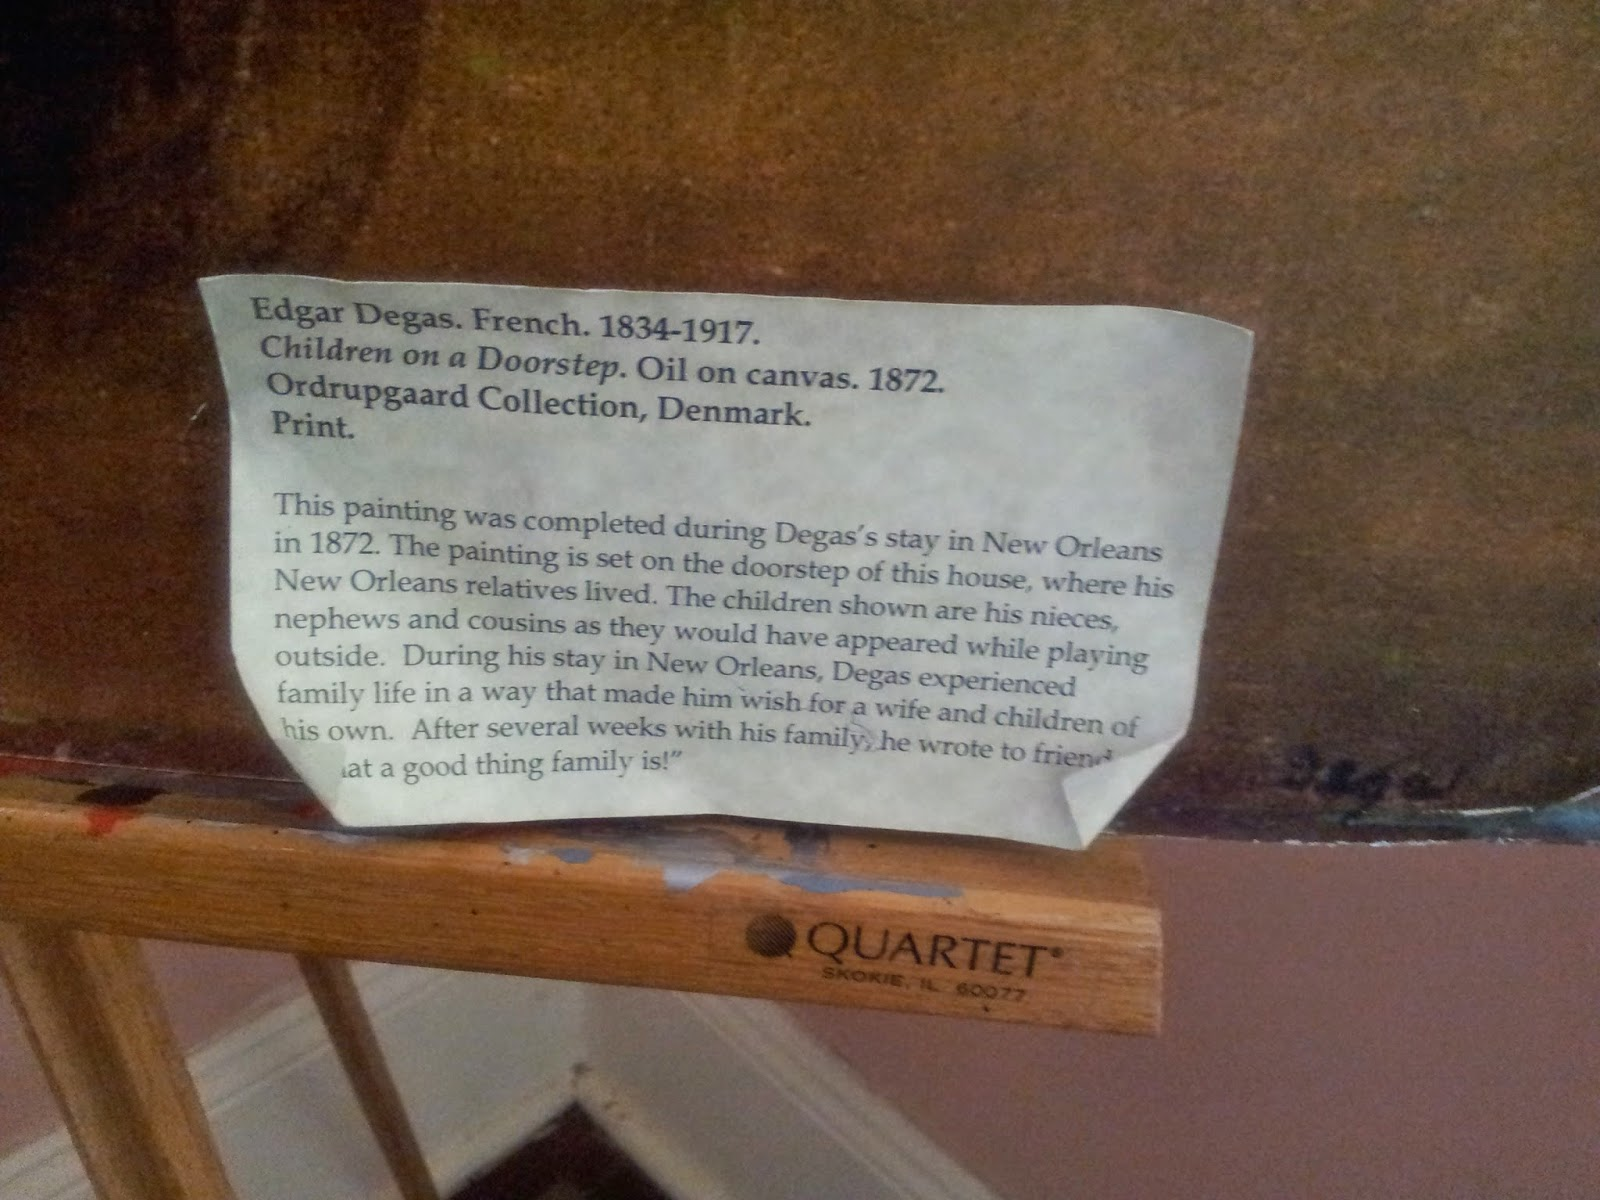 Description of Painting by Edgar Degas - 'Children on a doorstep'  at Degas House, New Orleans